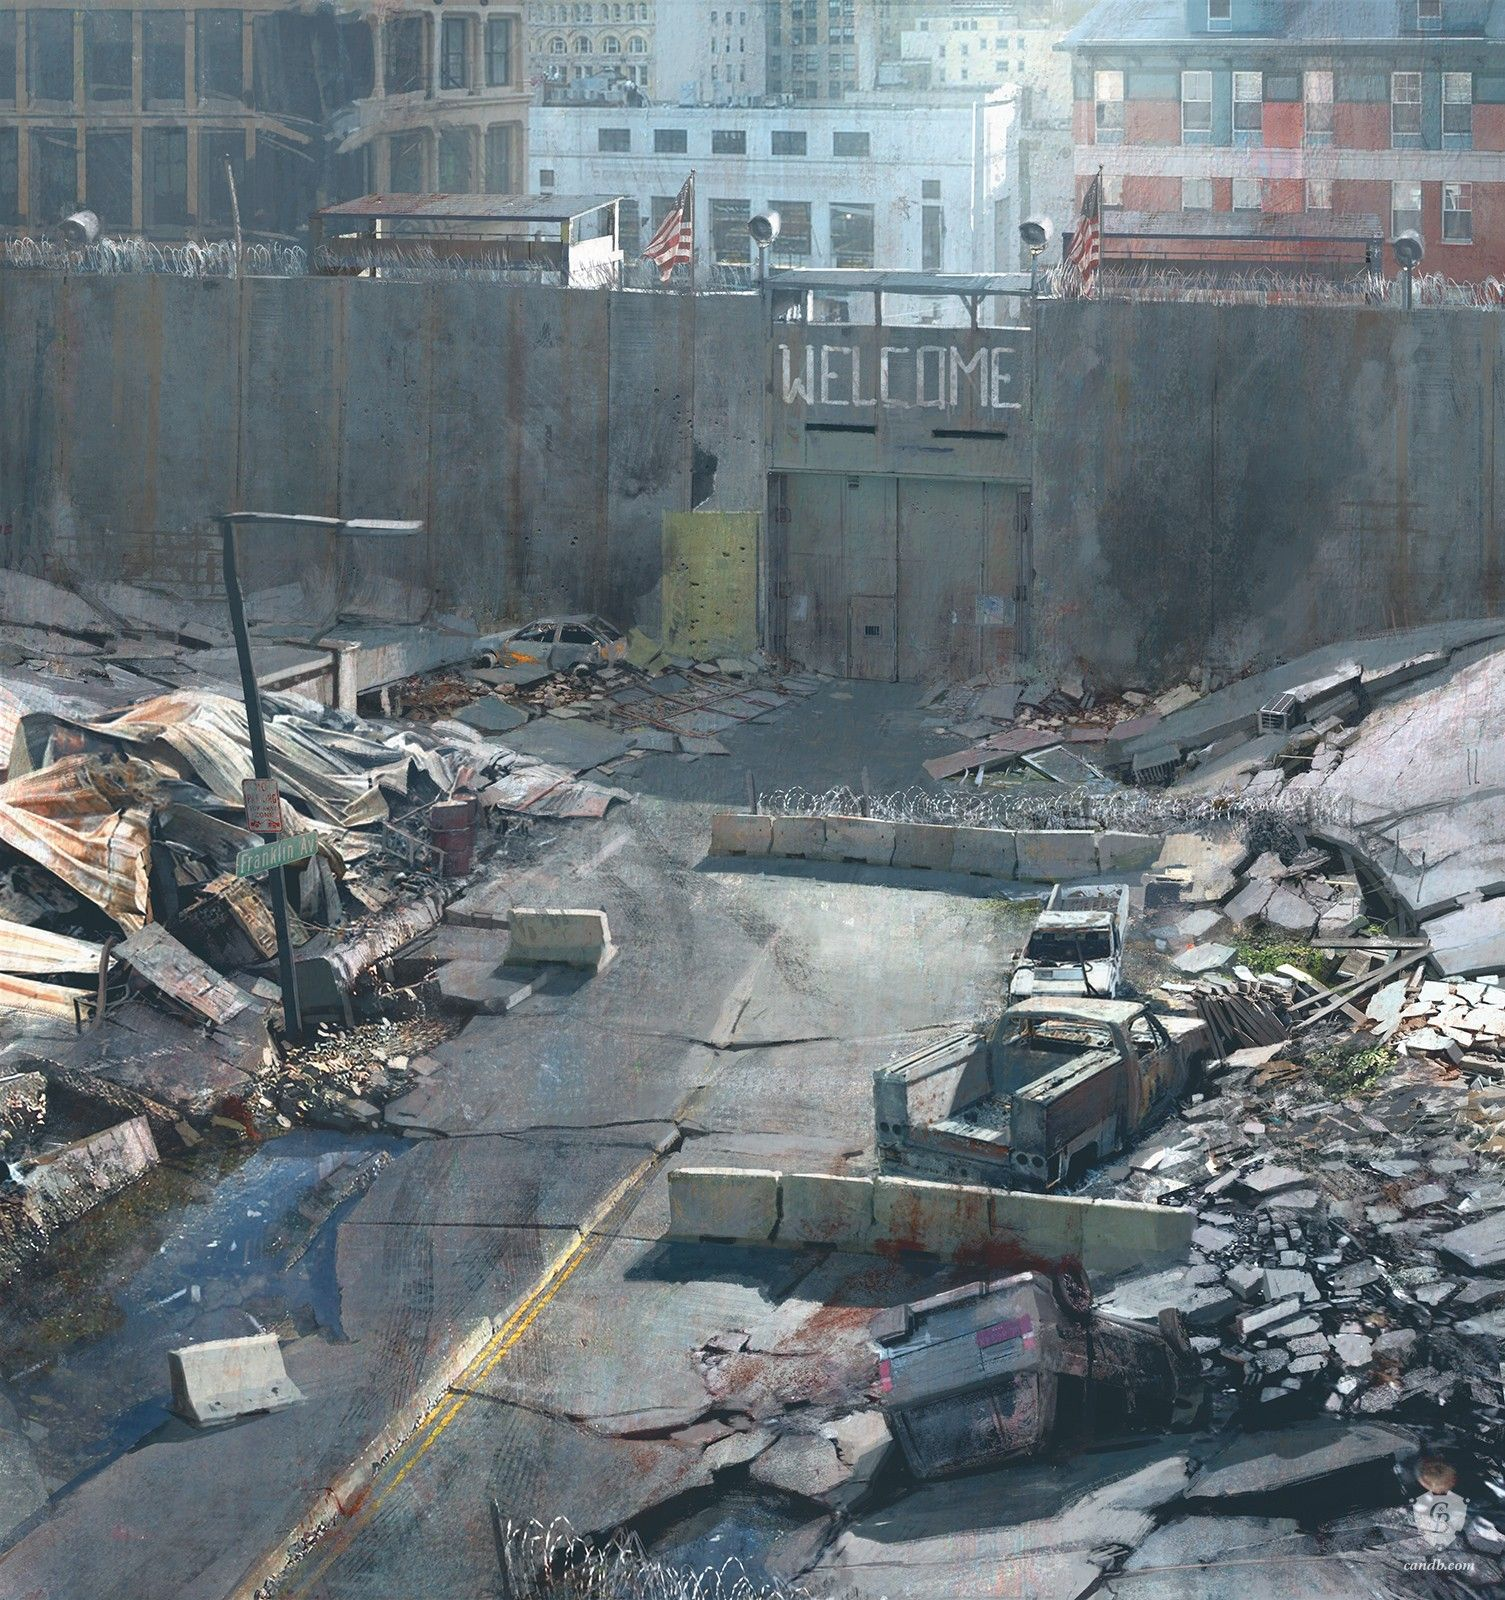 City Gate is concept art for PlayStation 3 game The Last of Us. The image and print have been made by concept artist Maciej Kuciara for studio Naughty Dog